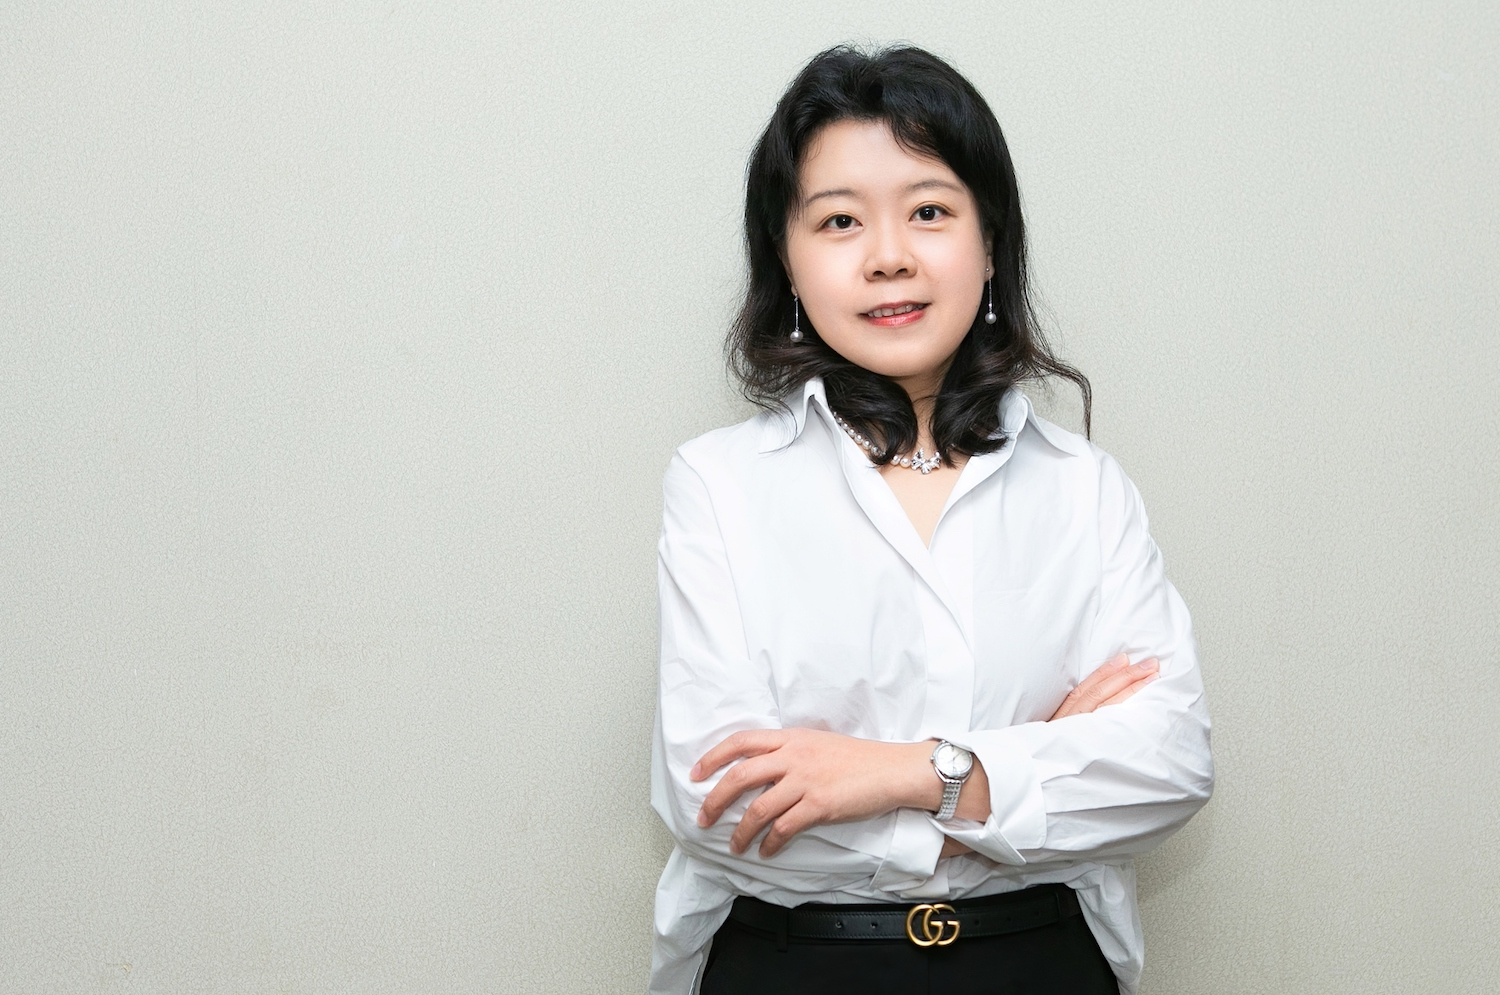 Jessica Liu became chief executive of Lazada Thailand in January this year, while maintaining her position as president of Lazada Group and head of LazMall.